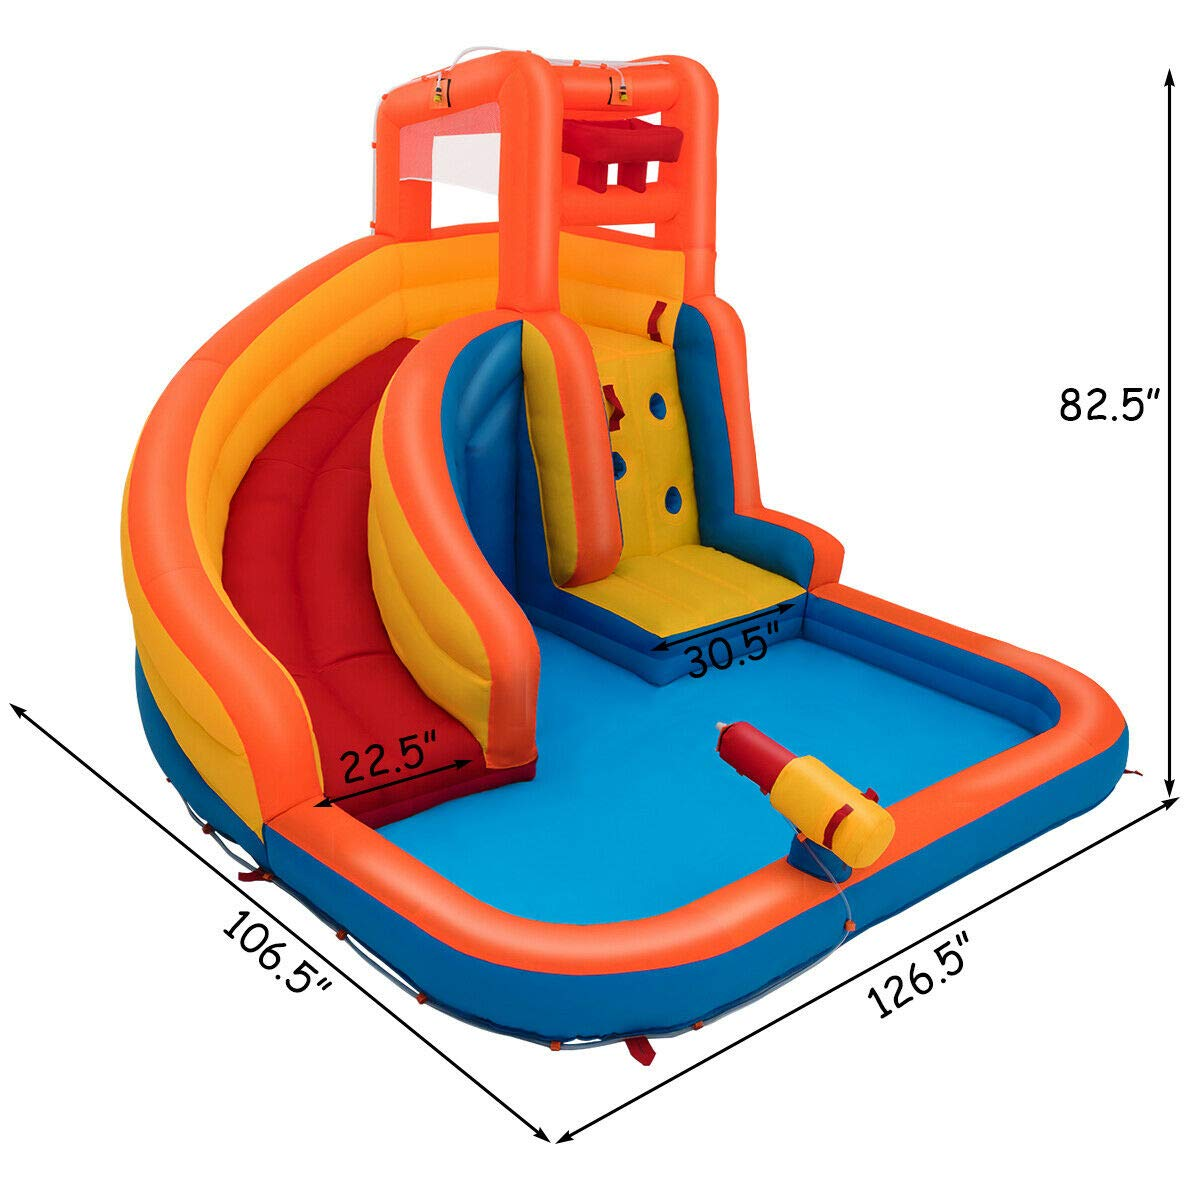 Heize Best Price Orange Inflatable Splash Water Bouncer Slide Bounce House w/ Climbing Wall & Water Hose Splash Pool(U.S. Stock) by Heize Best Price (Image #8)